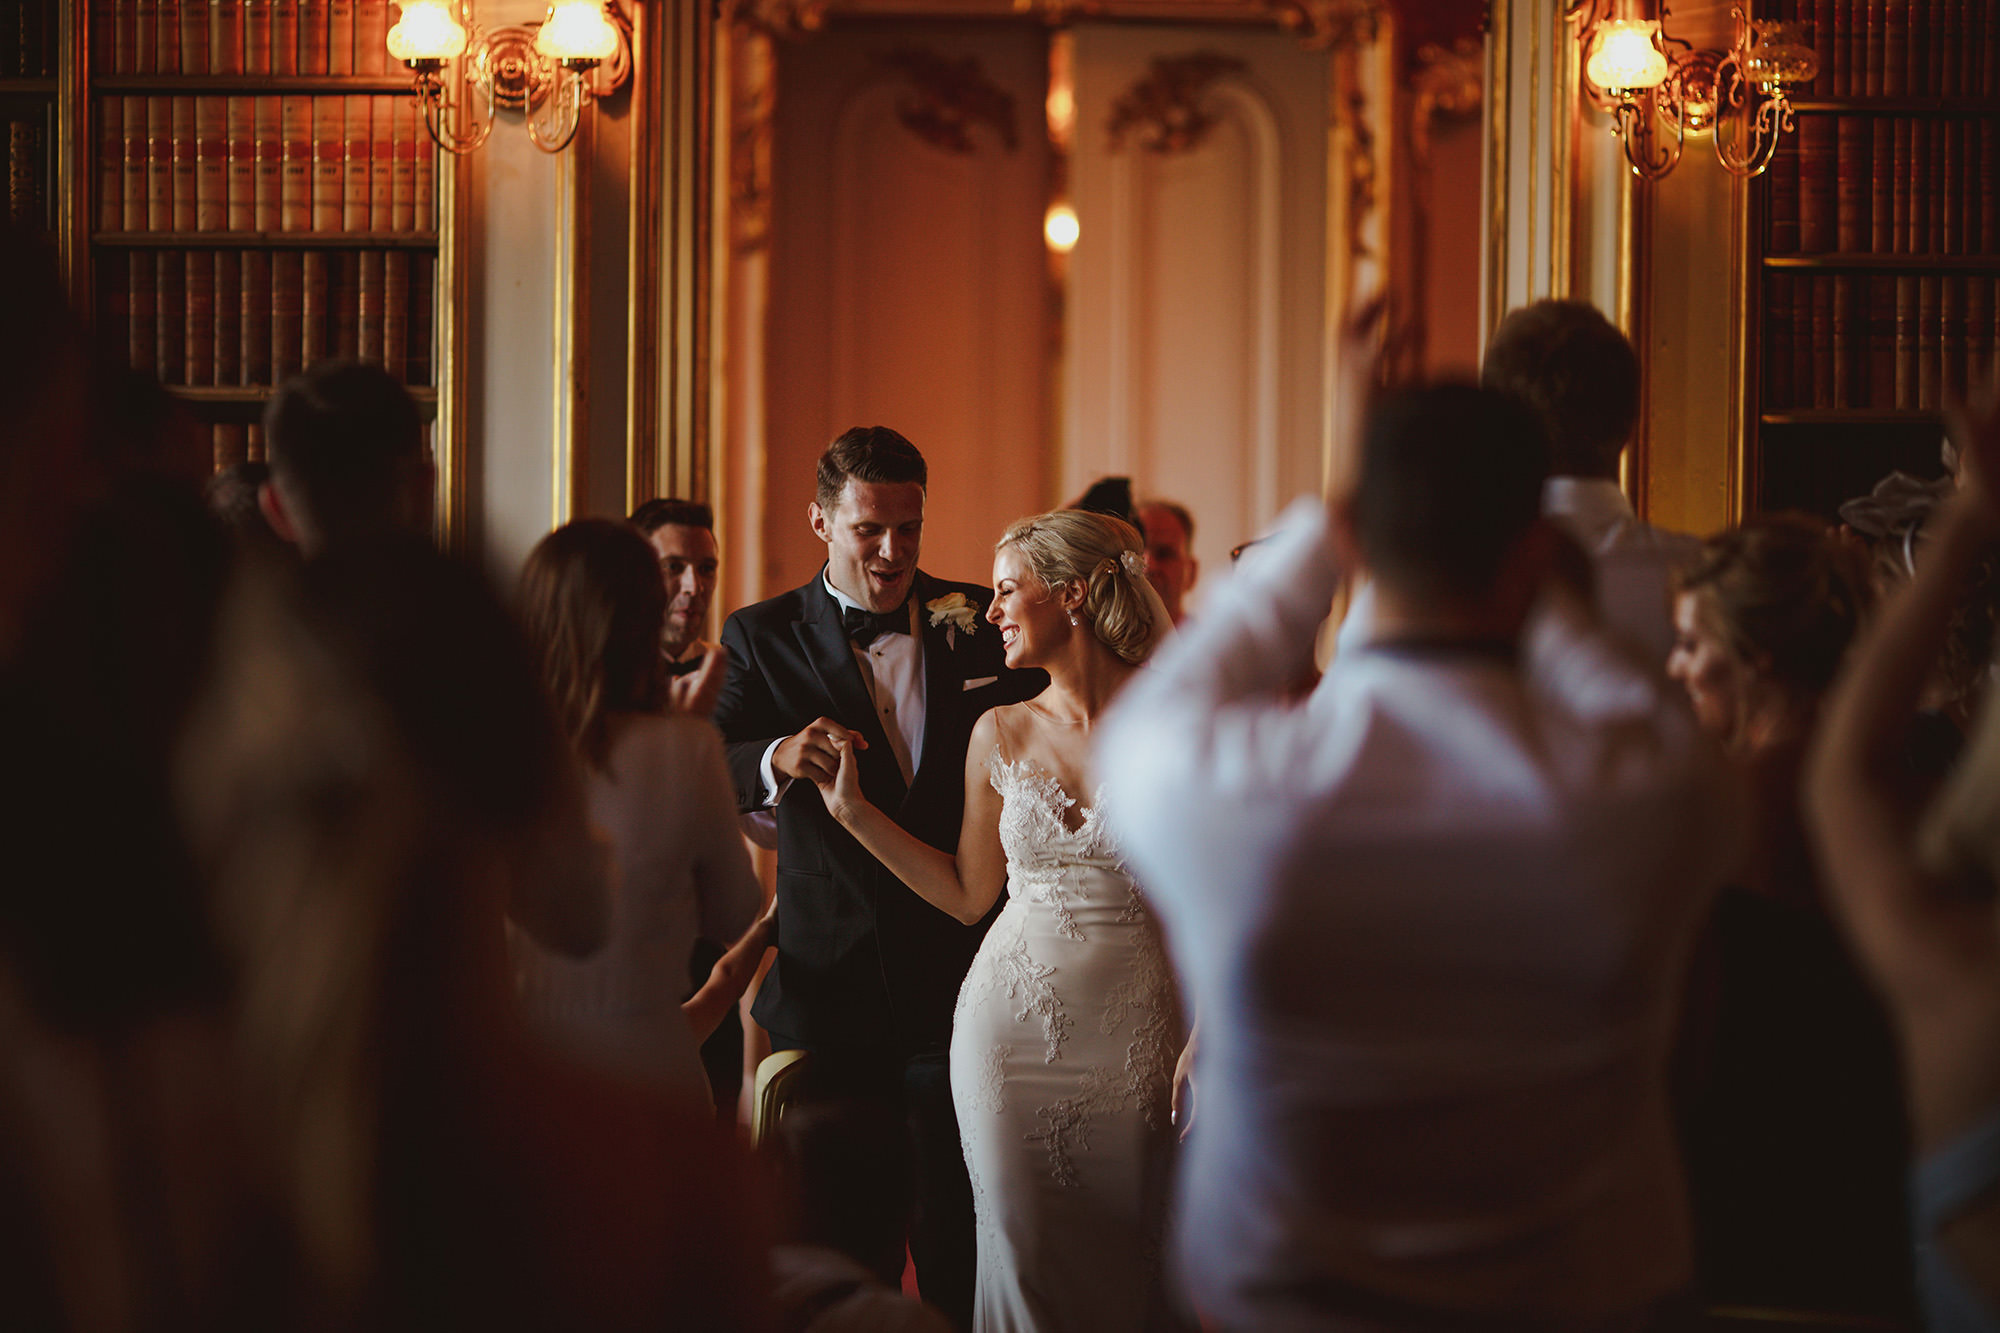 Couple dancing at Wrest Park reception hall - photo by Motiejus